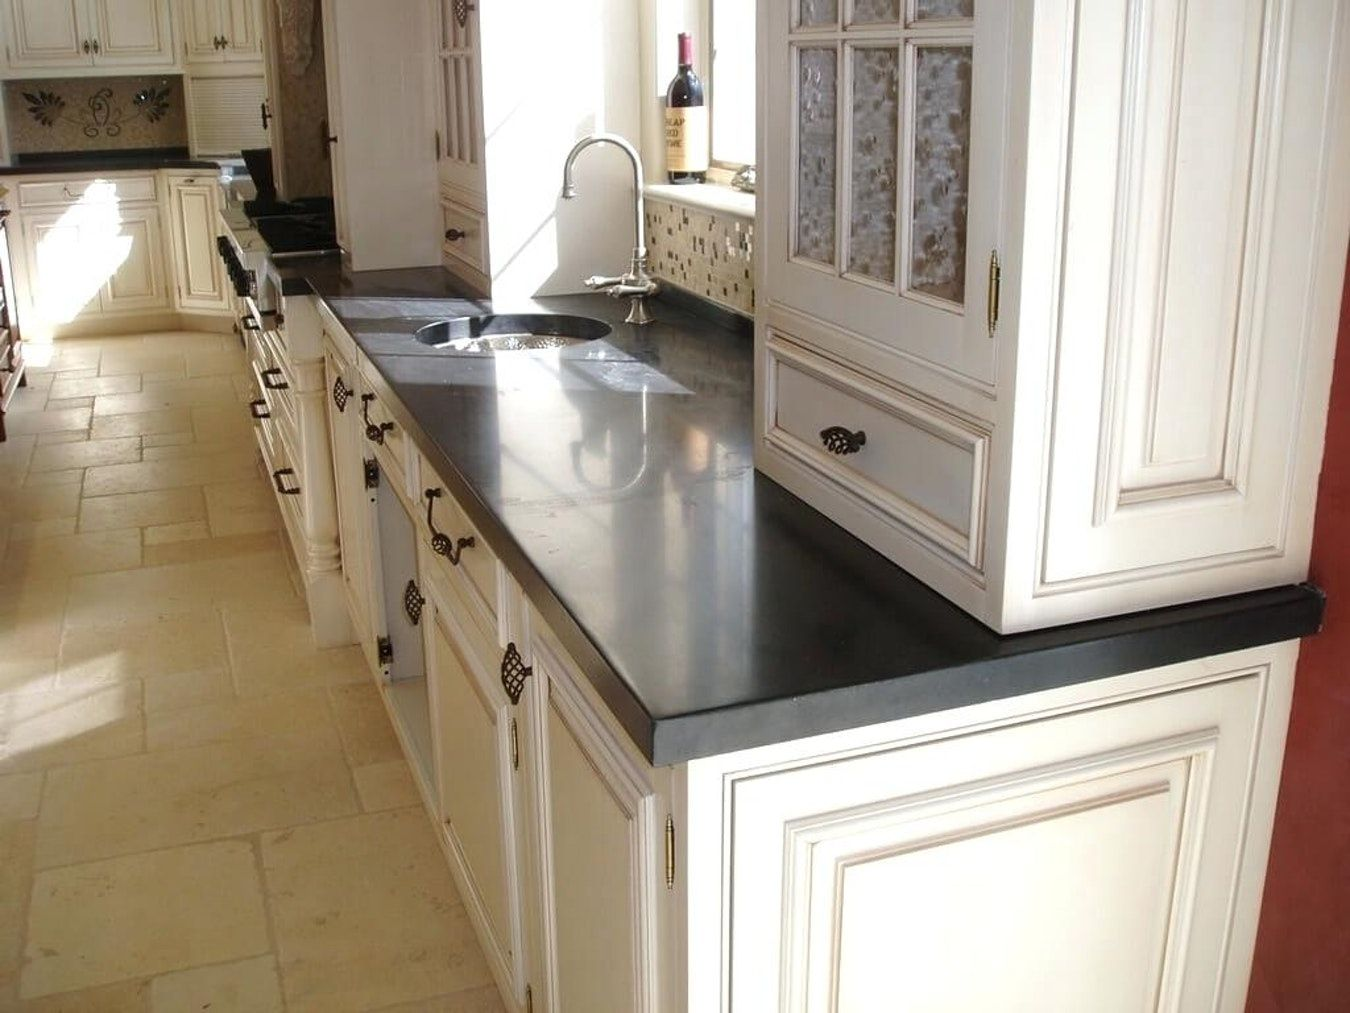 quartz countertops price per square foot 99 quartz countertops price per square foot remodeling ideas for kitchens check more at